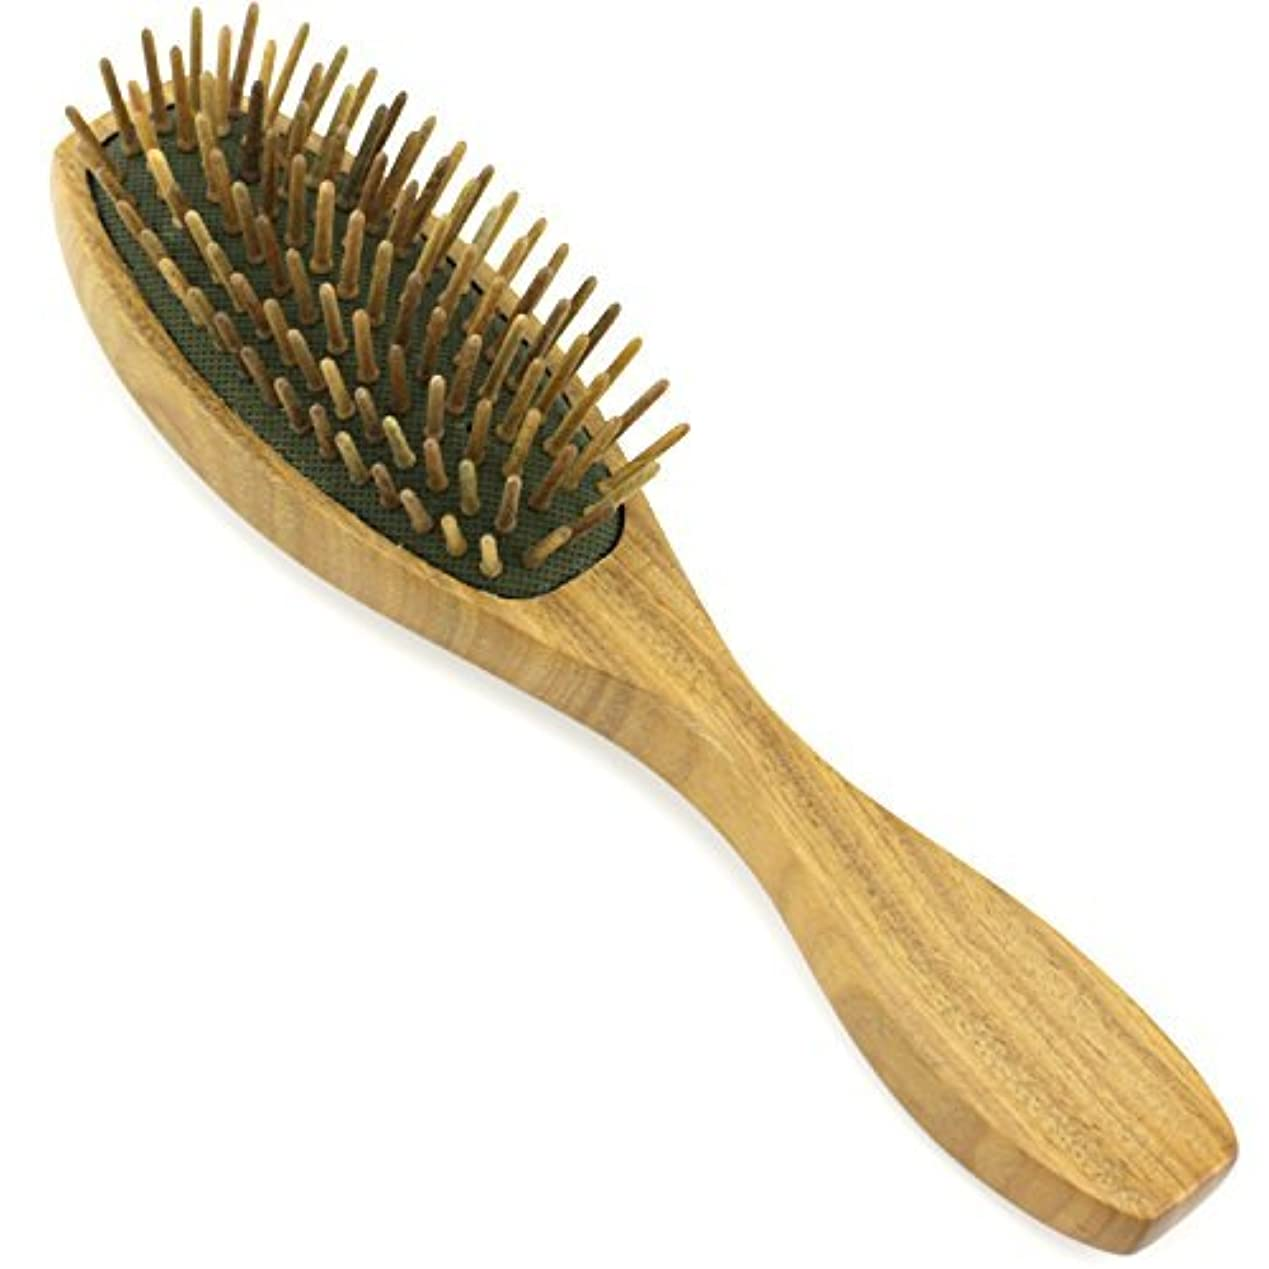 のれん不定幽霊Evolatree - Evolatree - Wood Bristle Brush, Wood Comb Hair Comb, Wood, 8.25